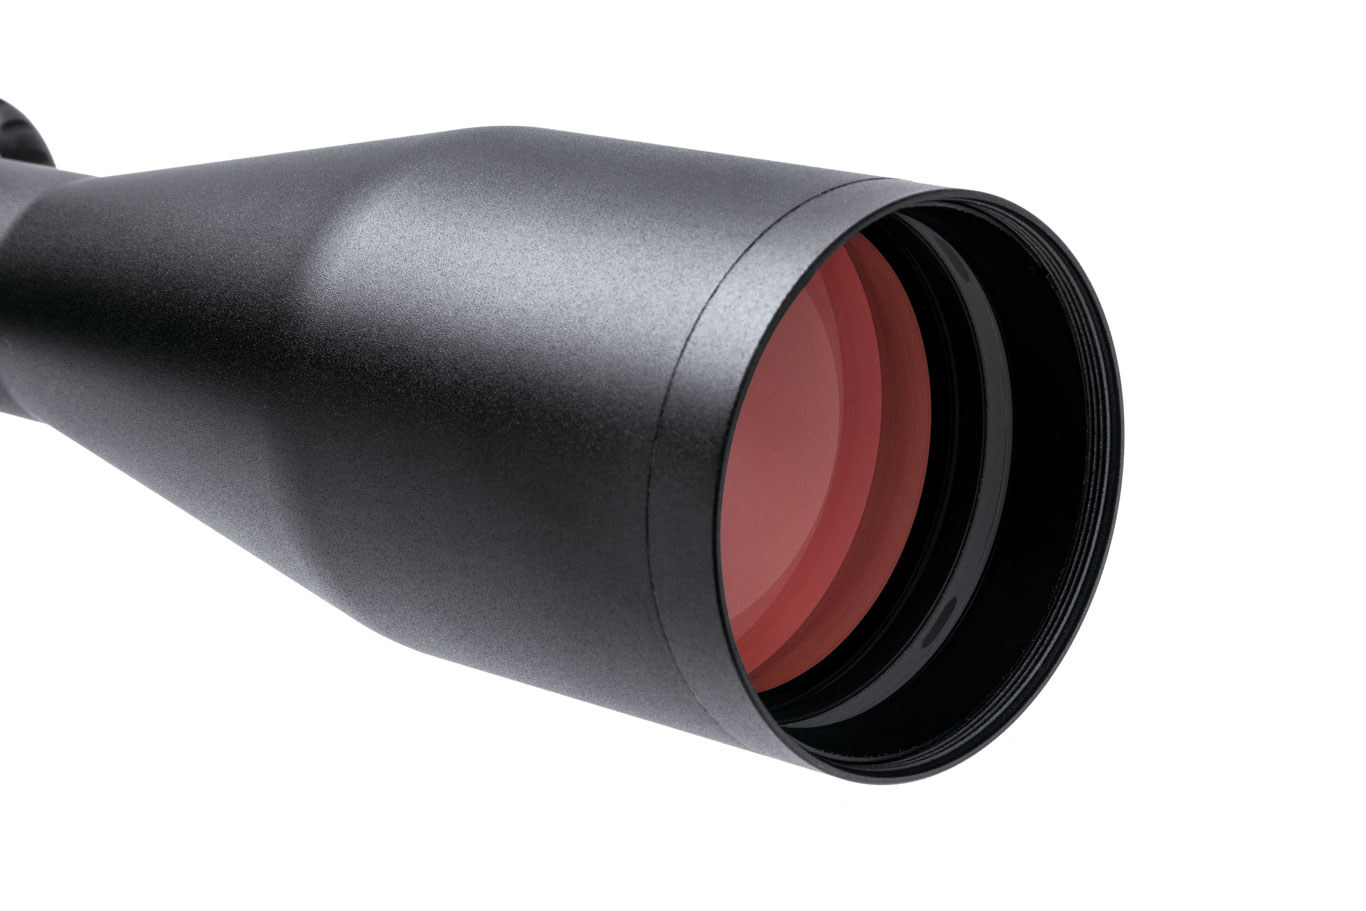 With its 50mm objective, the 6-24X is ideal for long-range precision shooting and hunting, even at twilight.